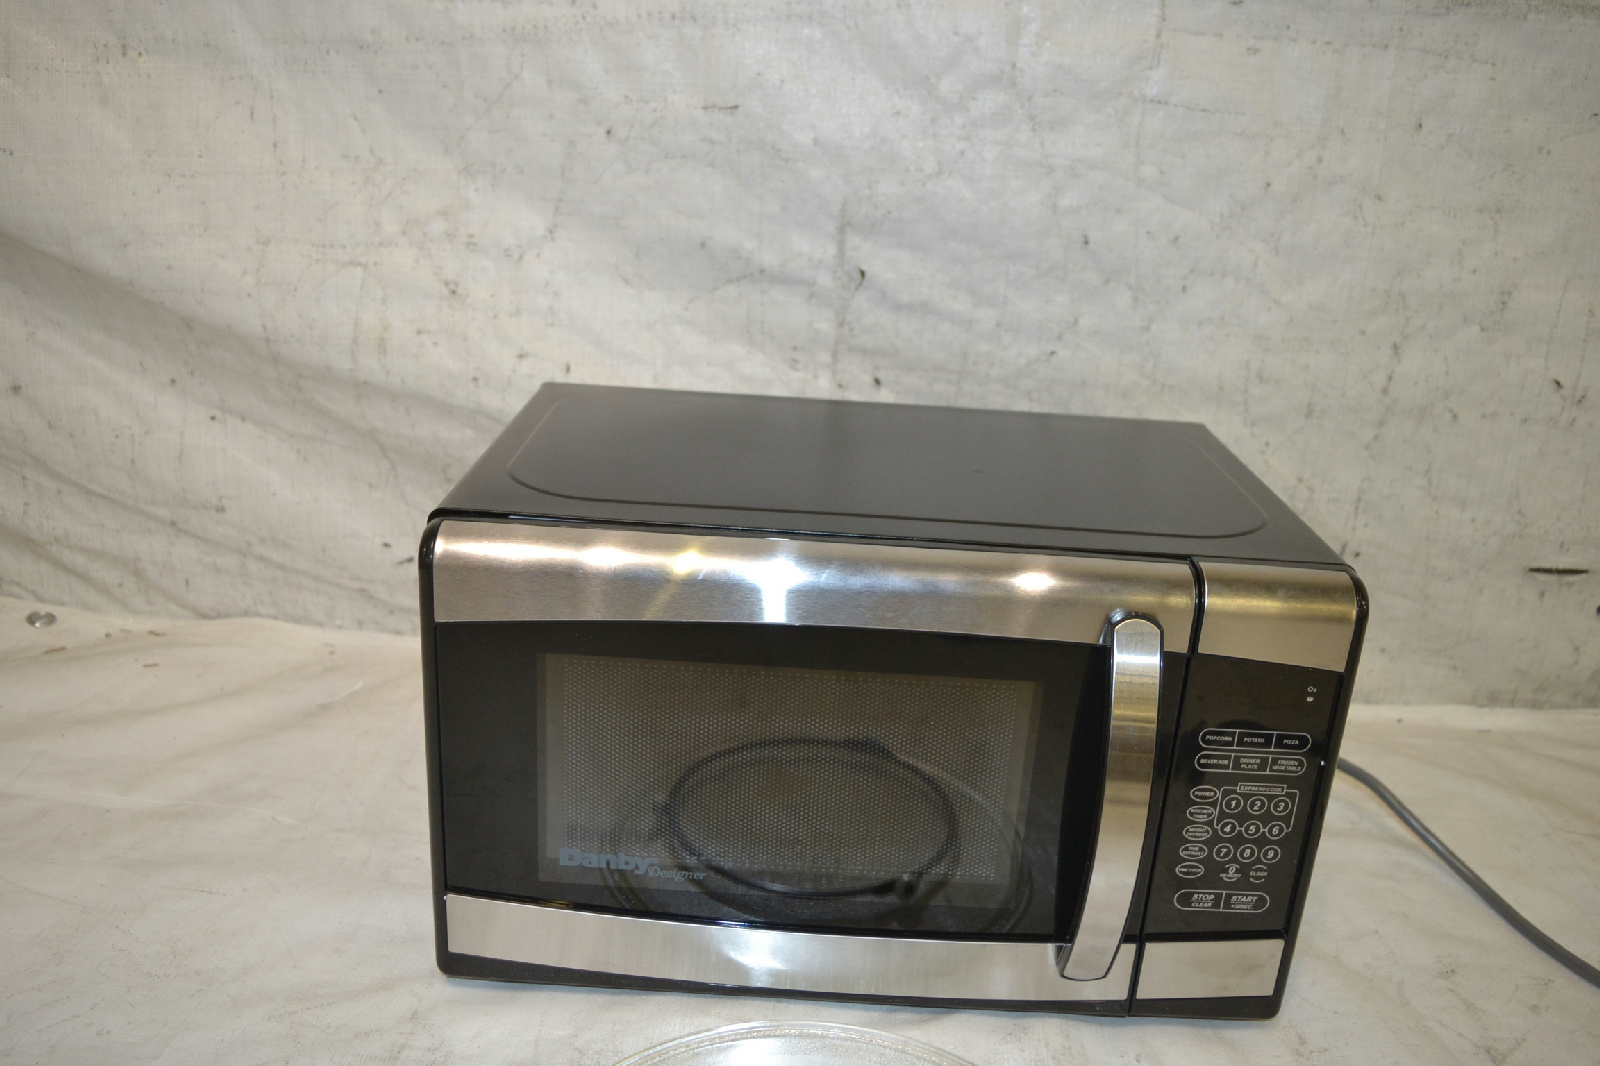 danby designer microwave how to change power level